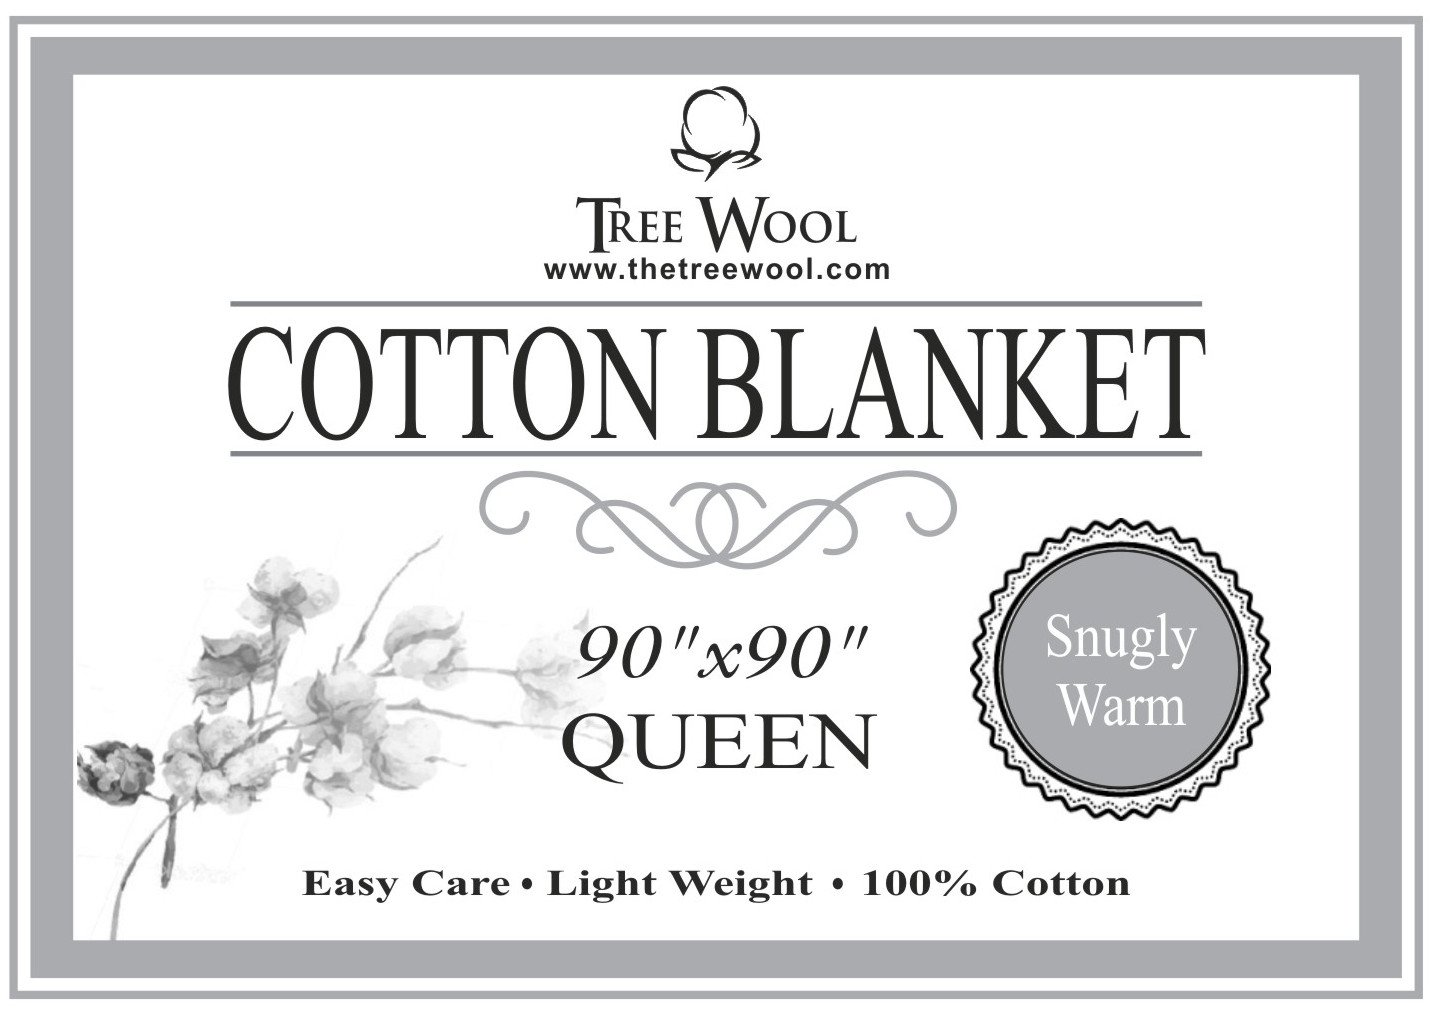 TreeWool, 100% Soft Premium Cotton Thermal Blanket Light Weight Easy Care Soft Comfortable and Warm (Queen Size - 90'' x 90'', Waffle Weave, Beige)